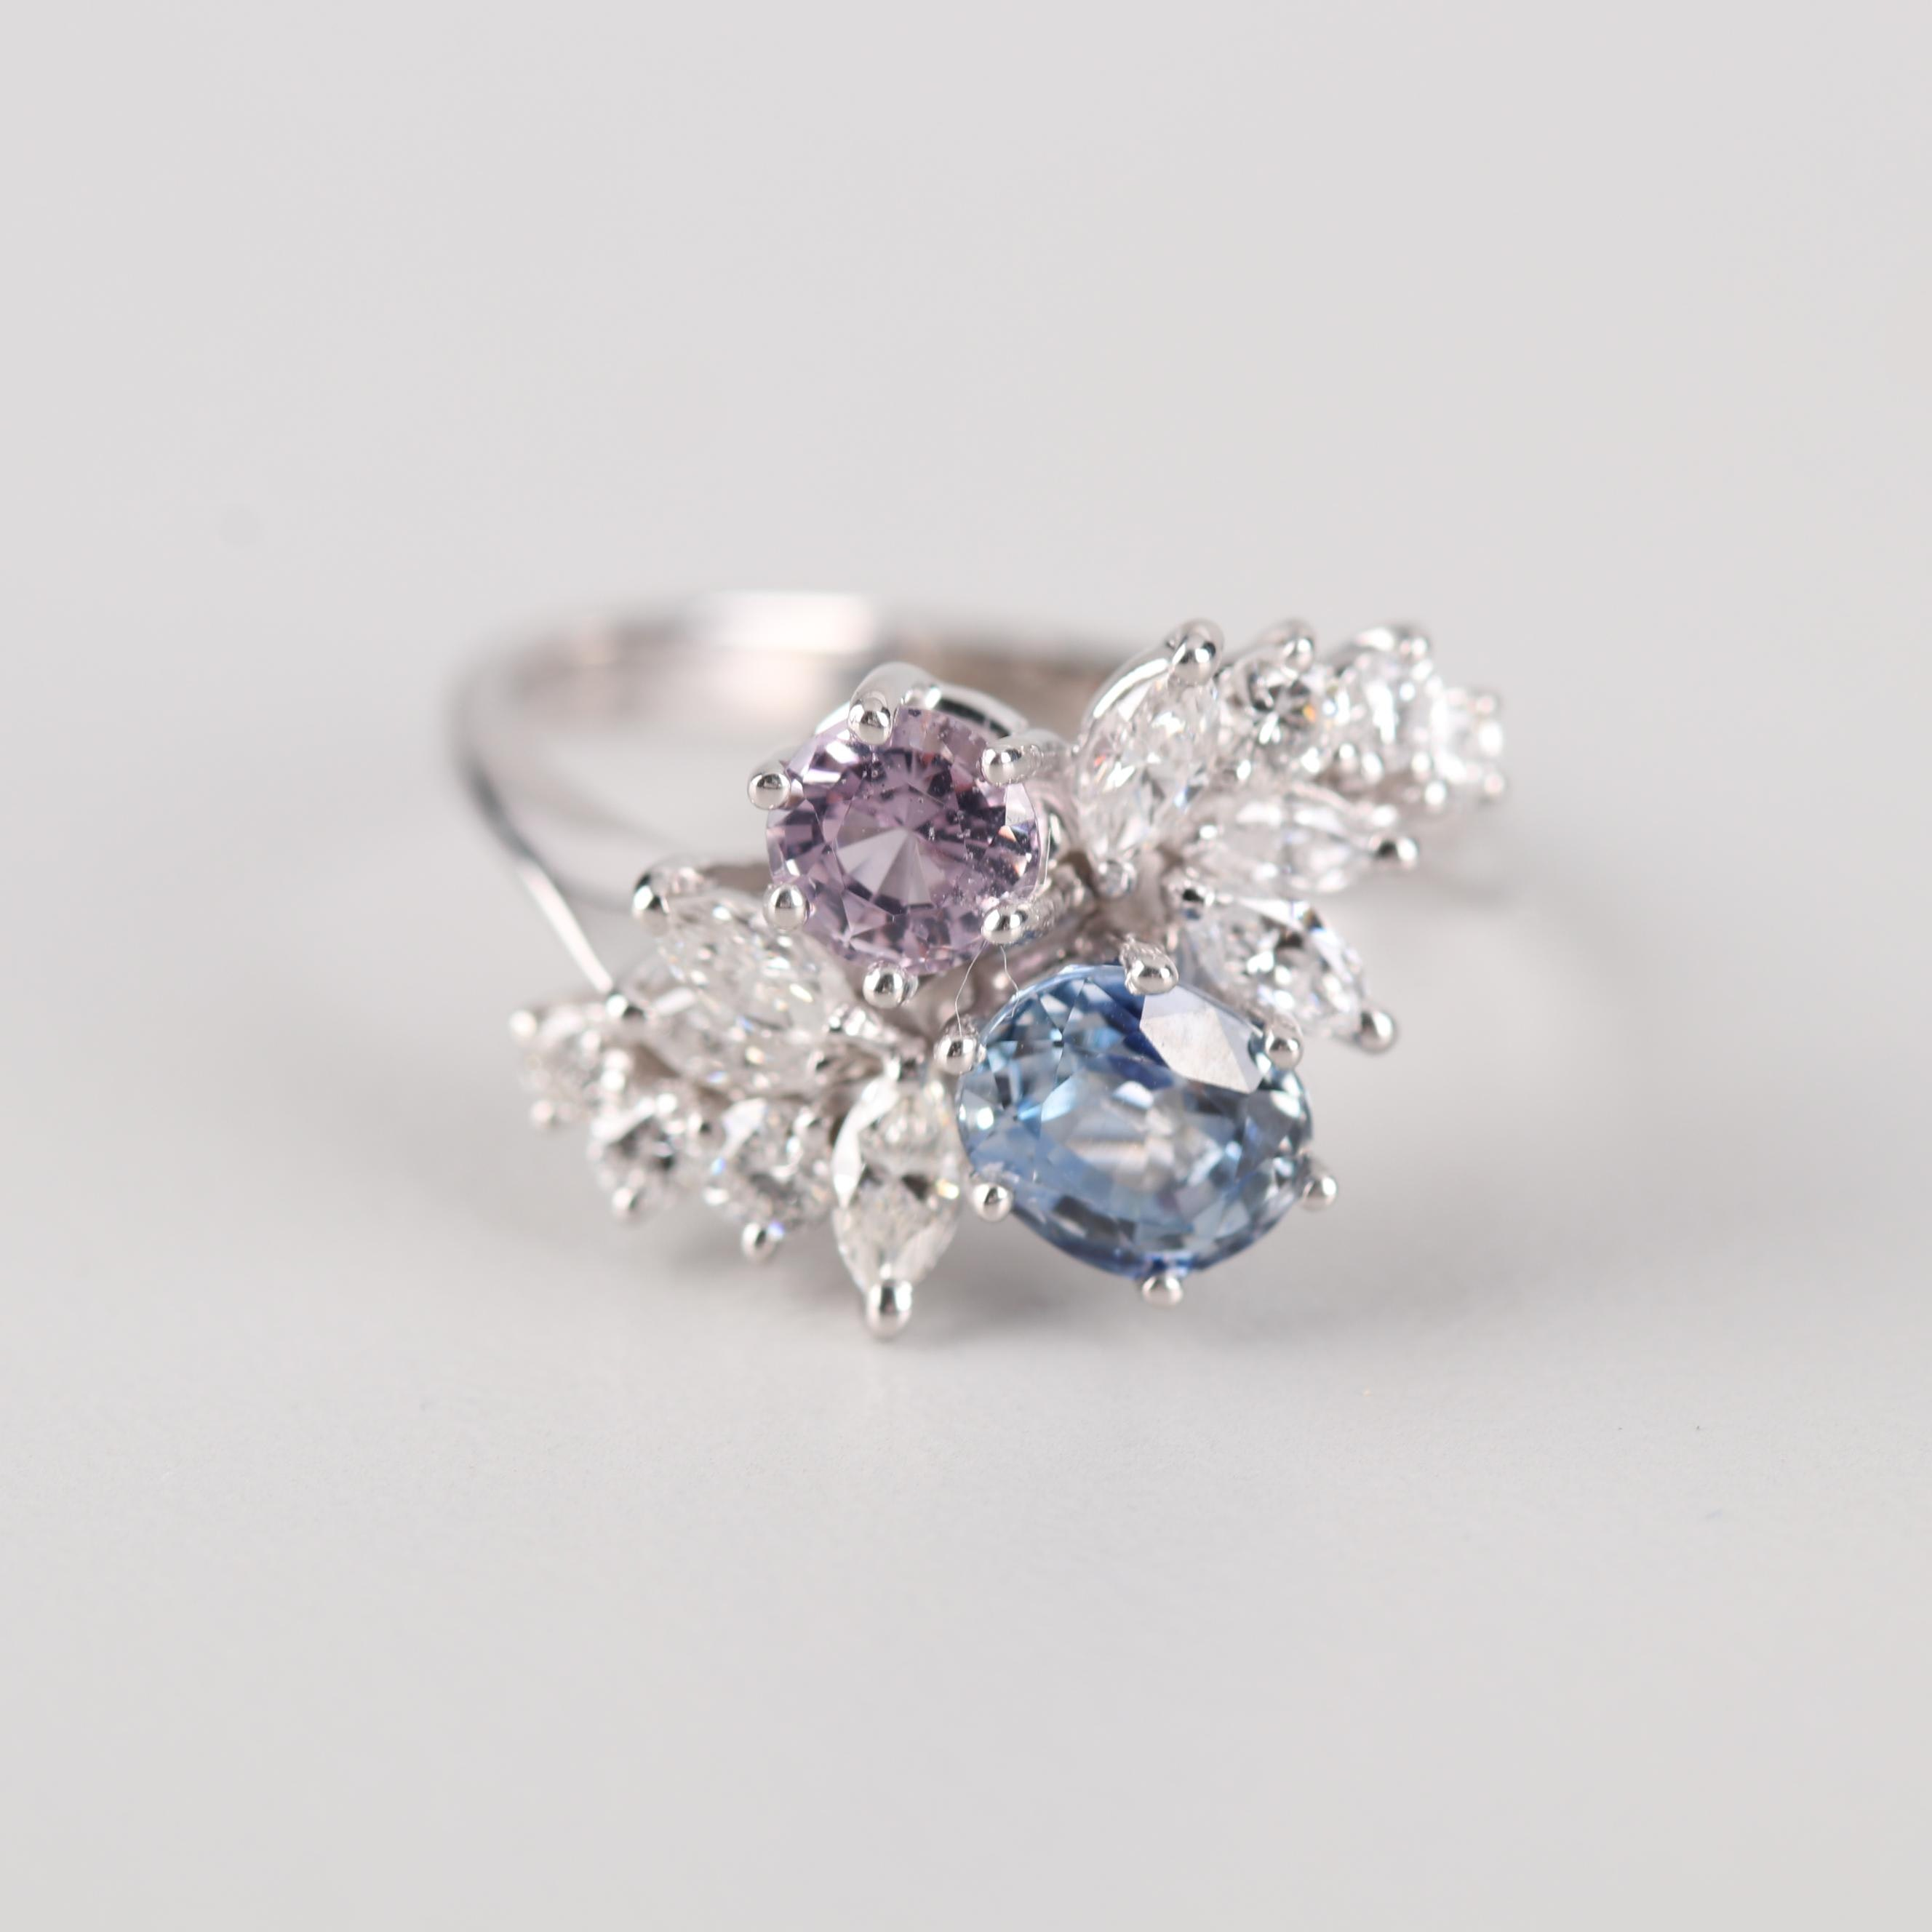 18K White Gold Diamond, Sapphire, and Pink Topaz Ring